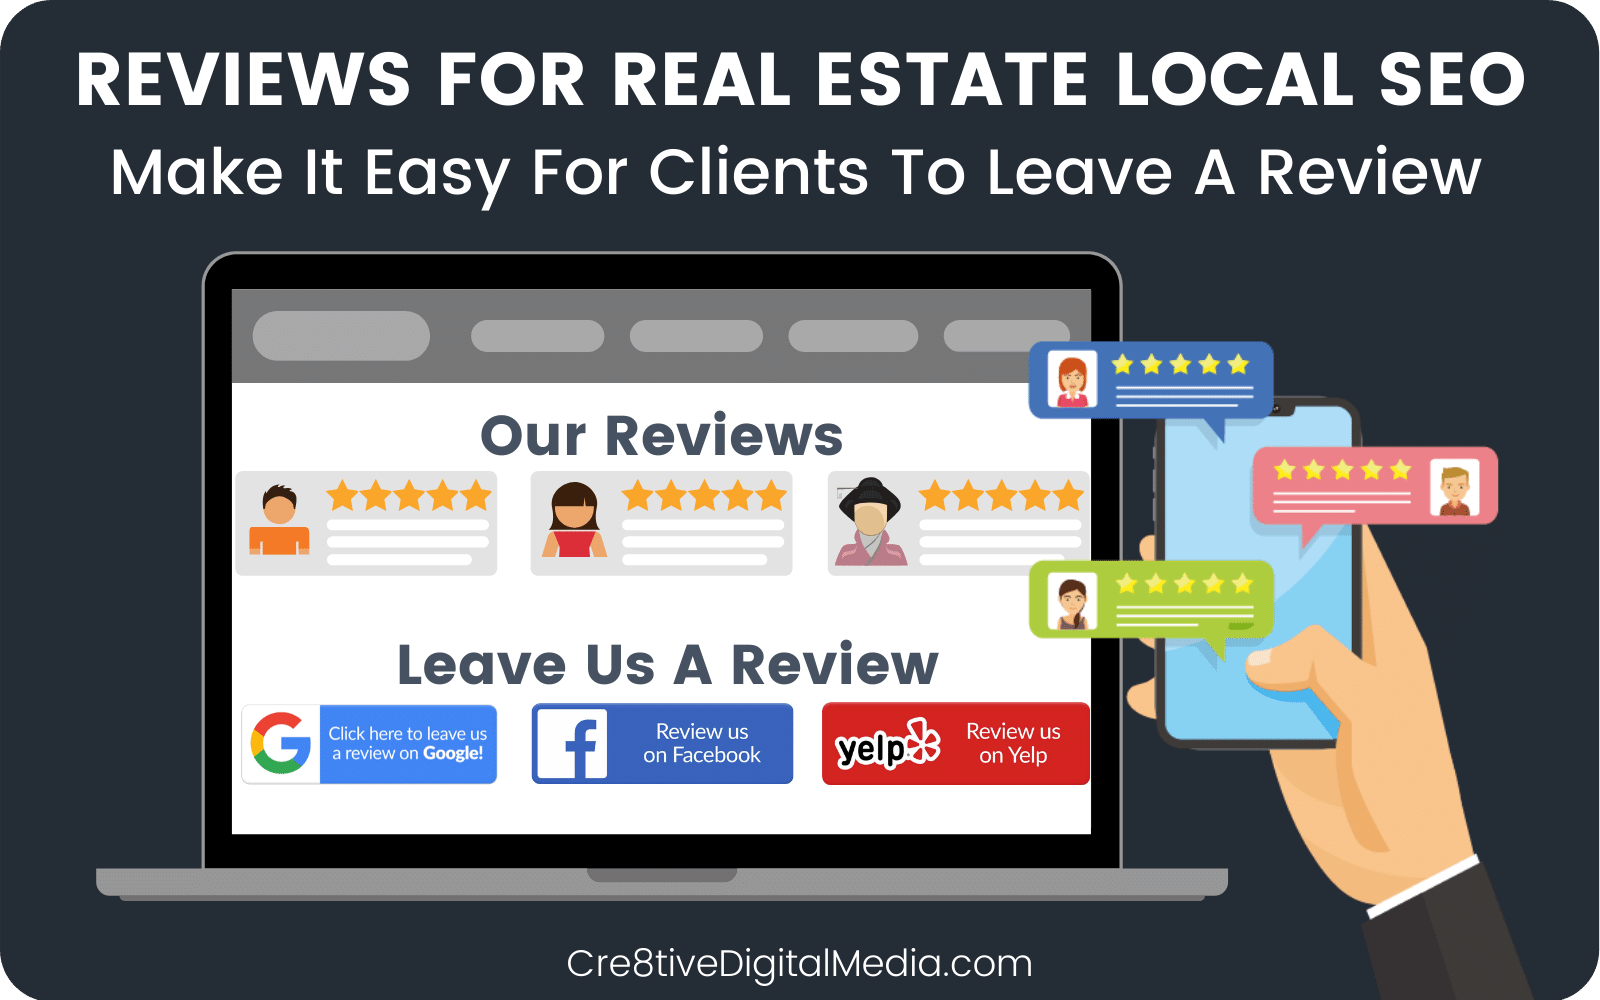 Reviews For Real Estate Local SEO